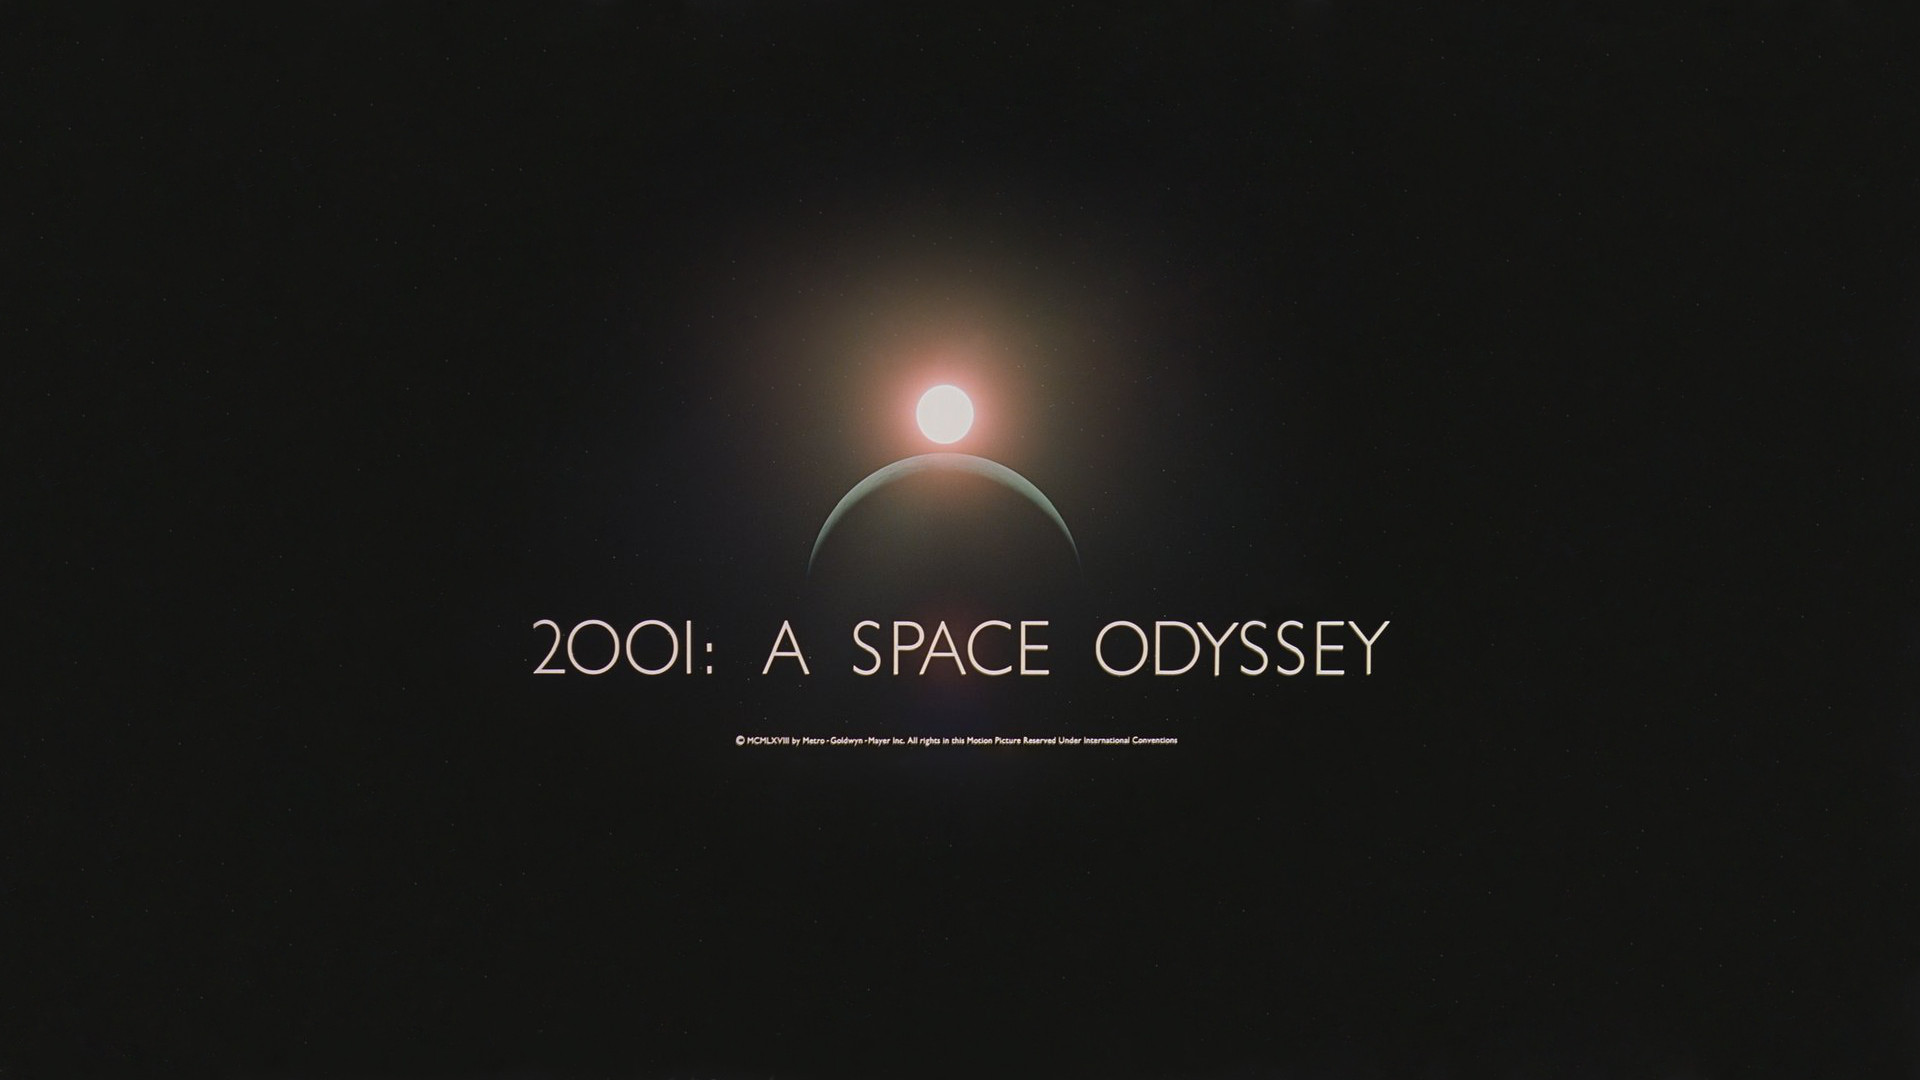 2001 a space odyssey full hd wallpaper and background